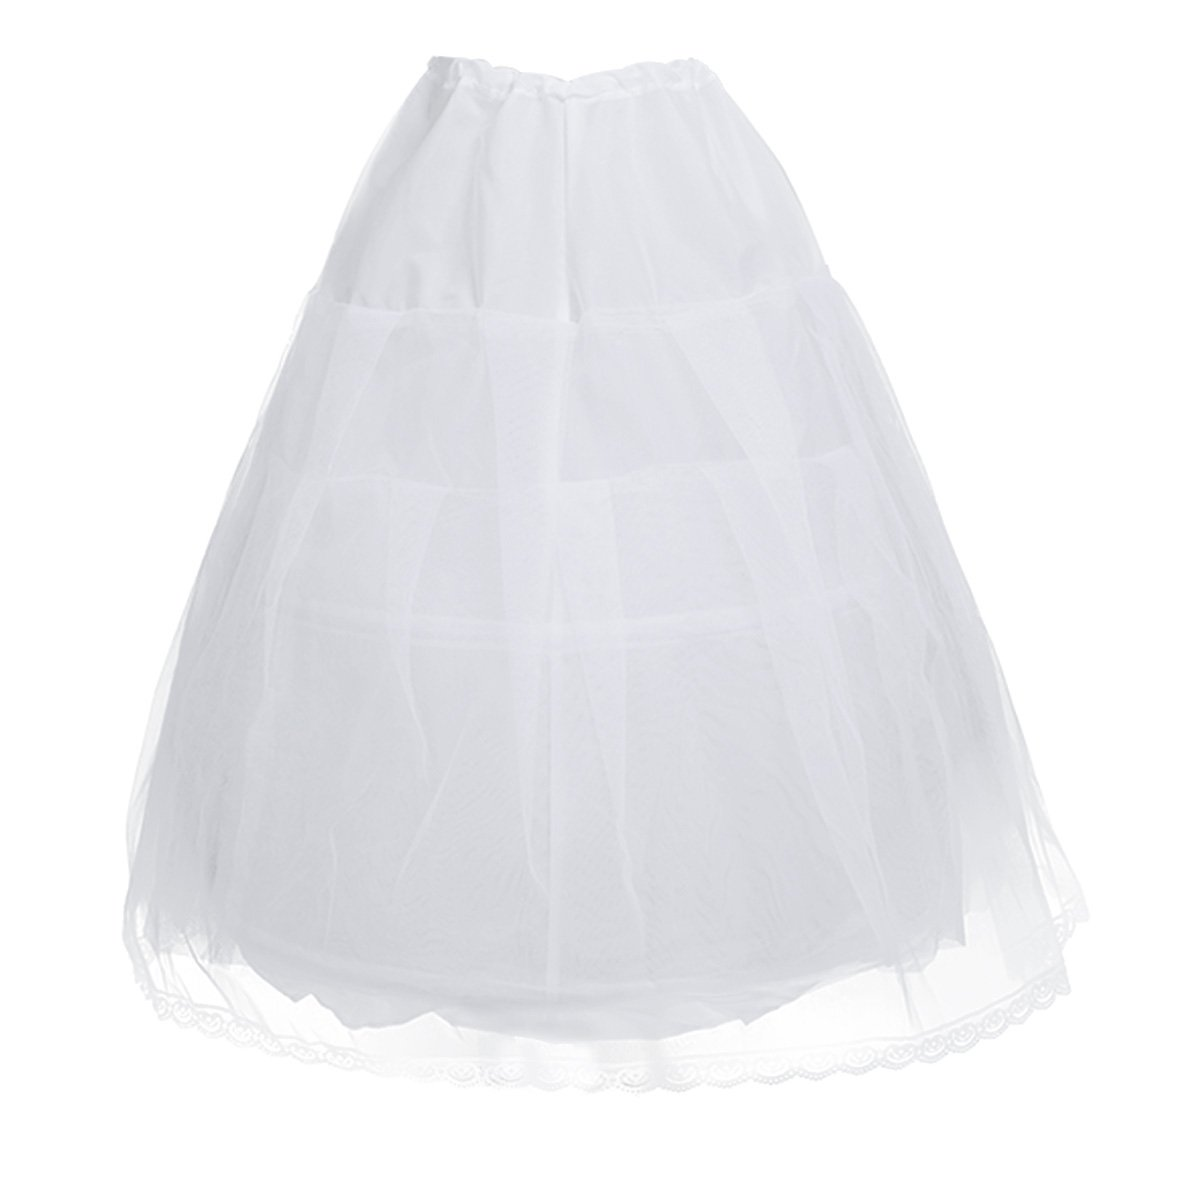 Freebily Kids Flower Girls' Crinoline Petticoat 2 Hoops Net Wedding Bridesmaid Drawstring Underskirt Slip